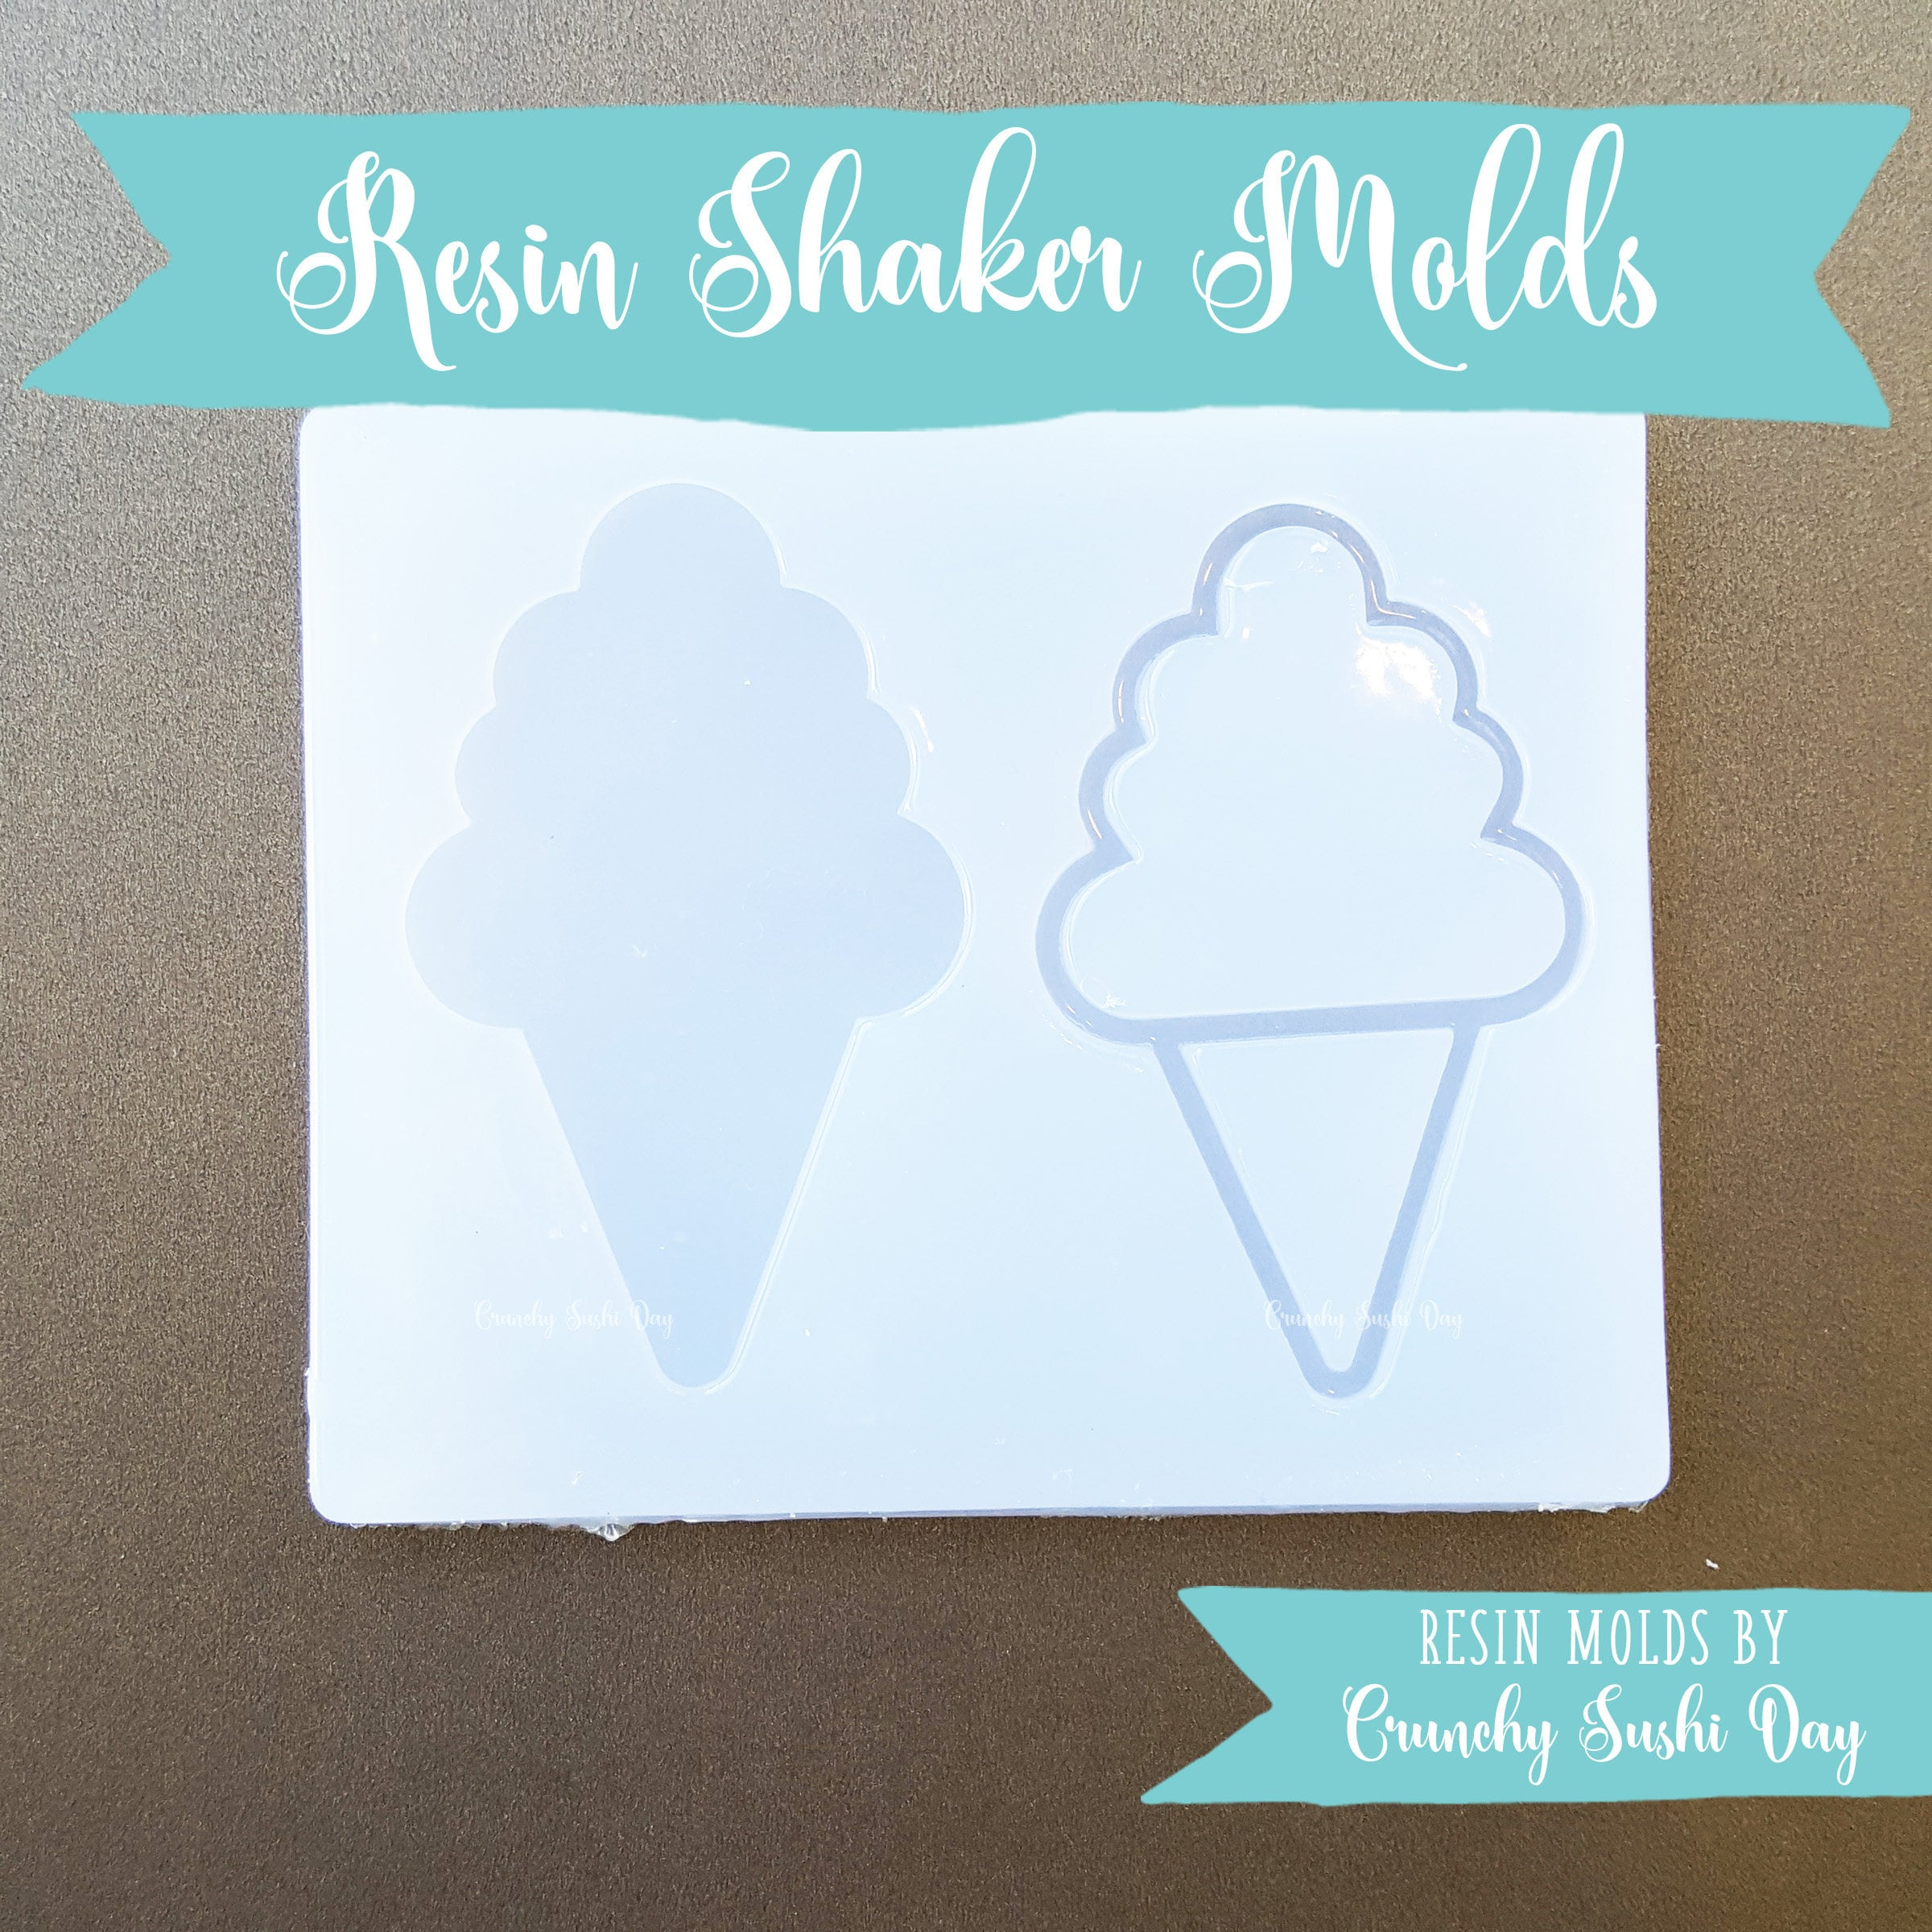 Ice Cream Cone Shaker Mold, Resin Shaker Mold, Silicone